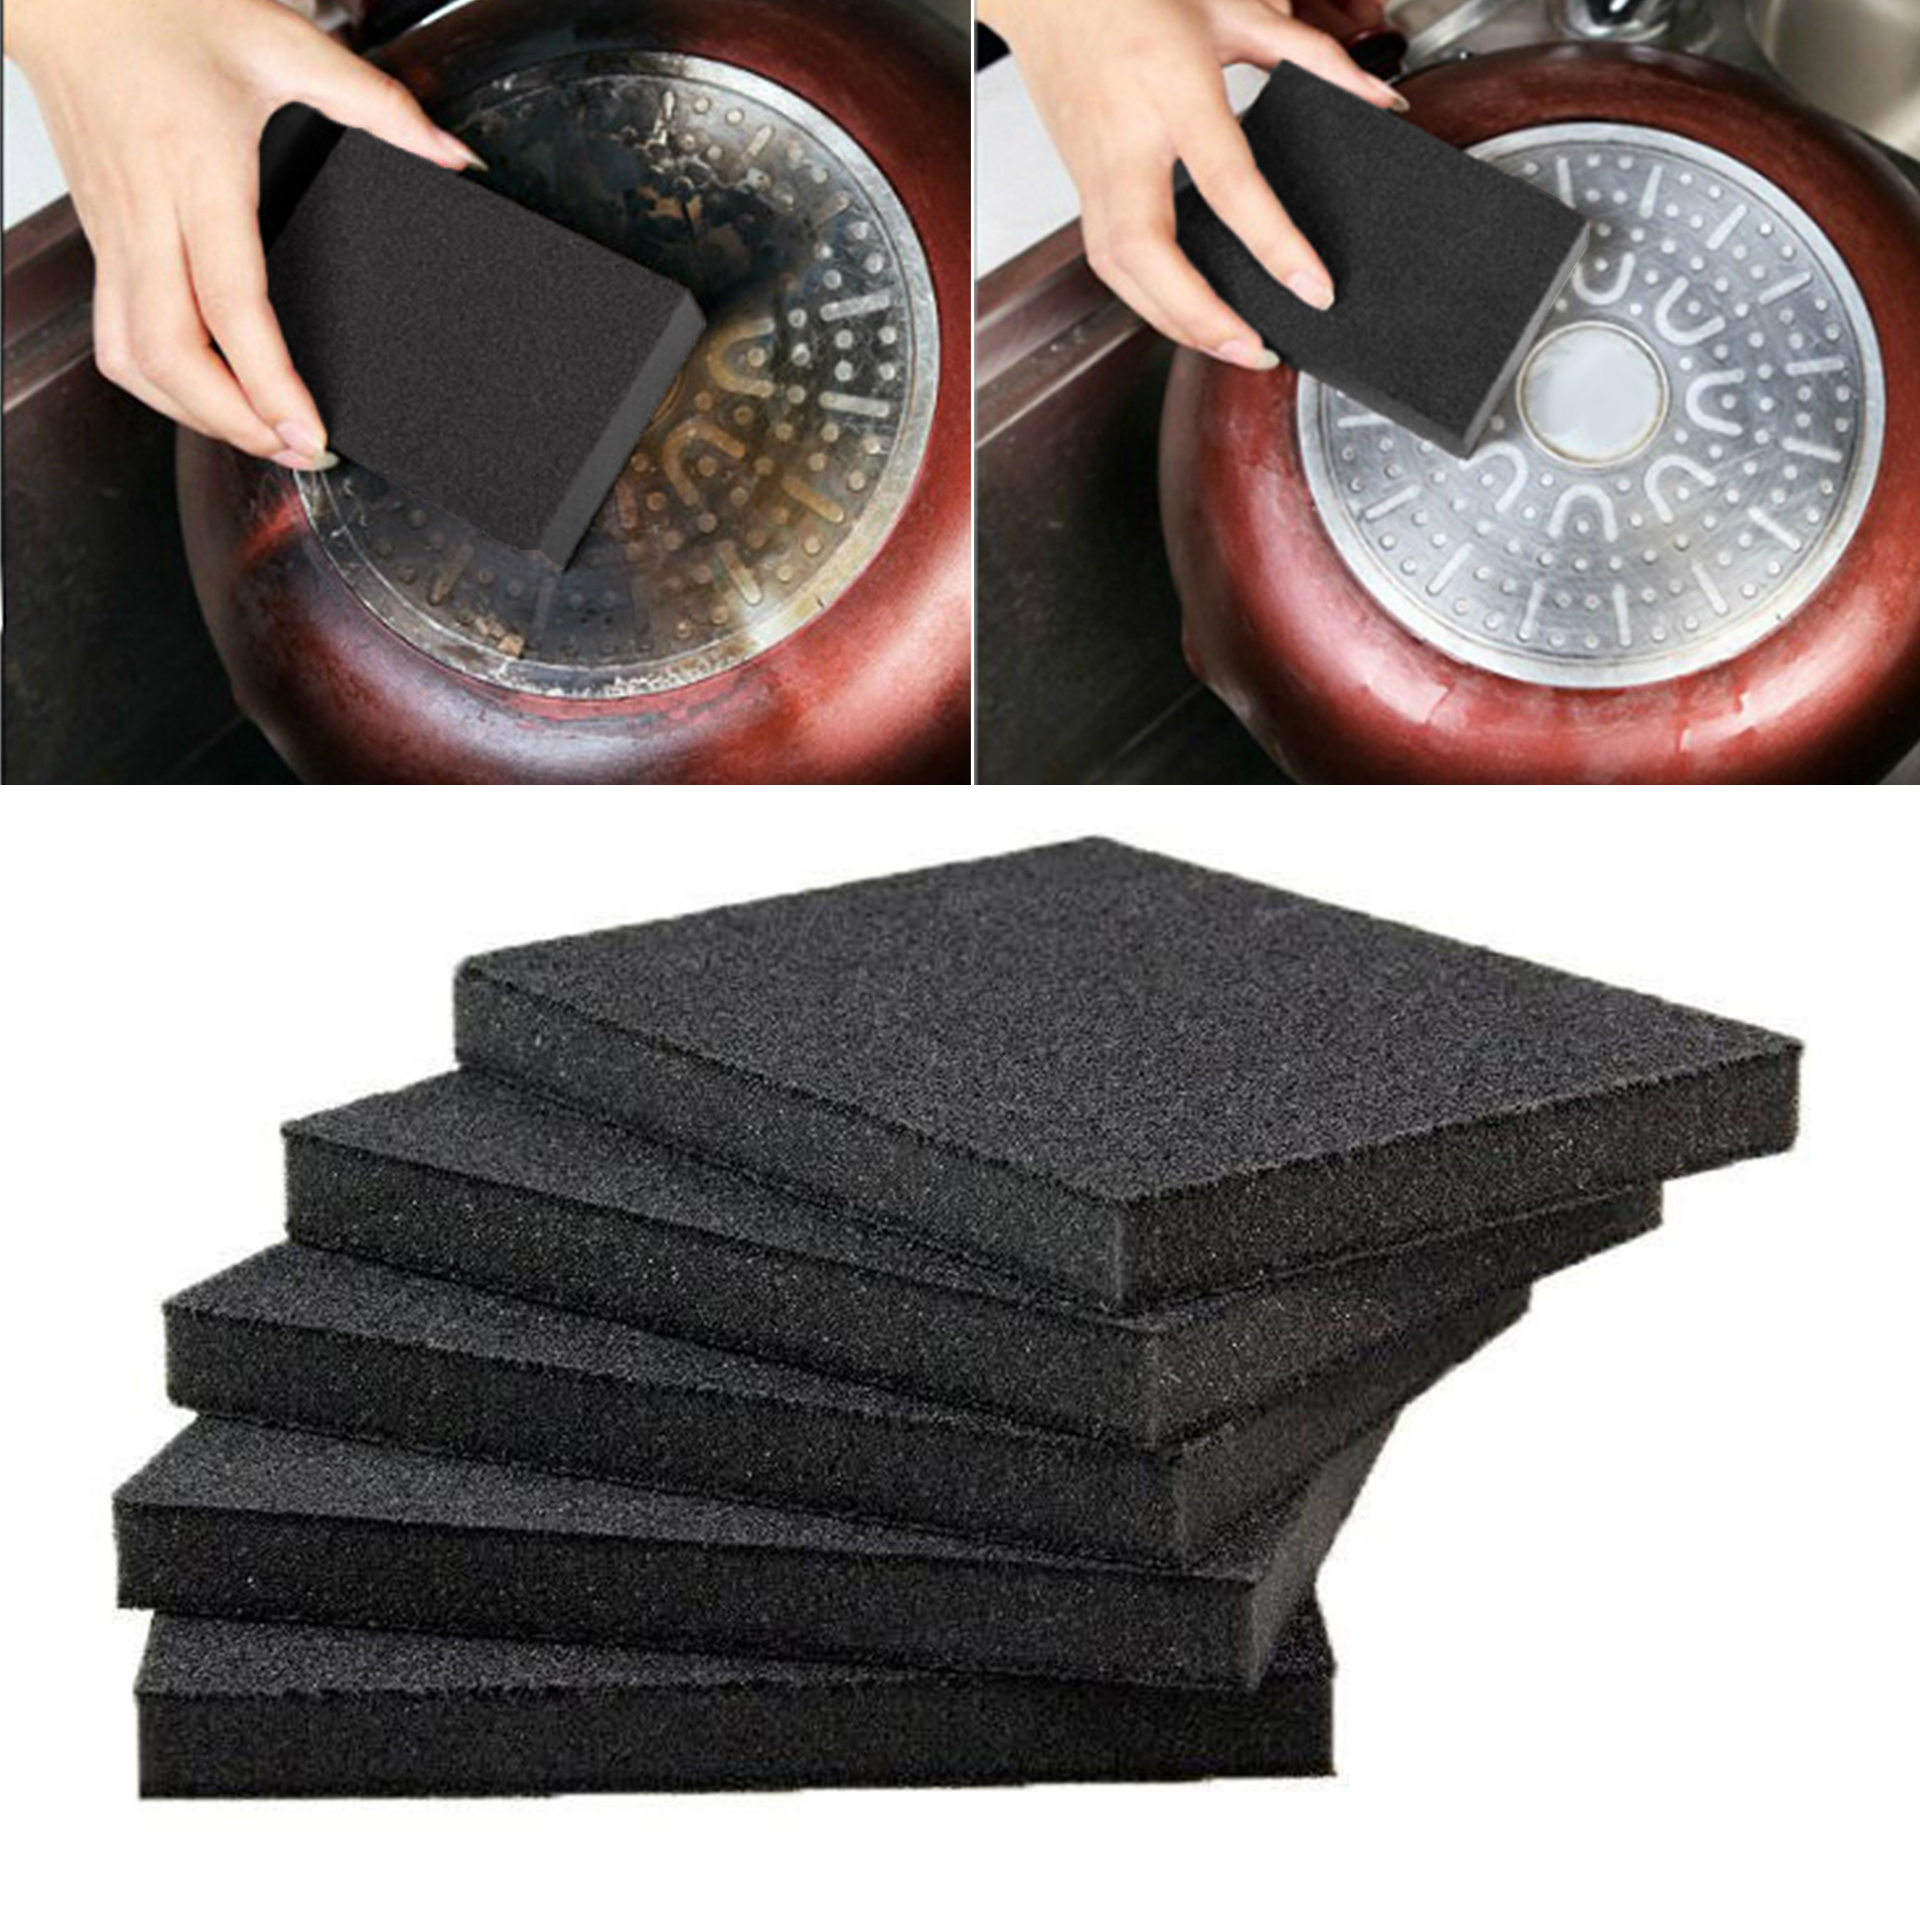 Magic Nano Emery Sponge For Outdoor Household Cleaning Cotton Eraser Multifunctional Tools Descaling Clean Rub Pot